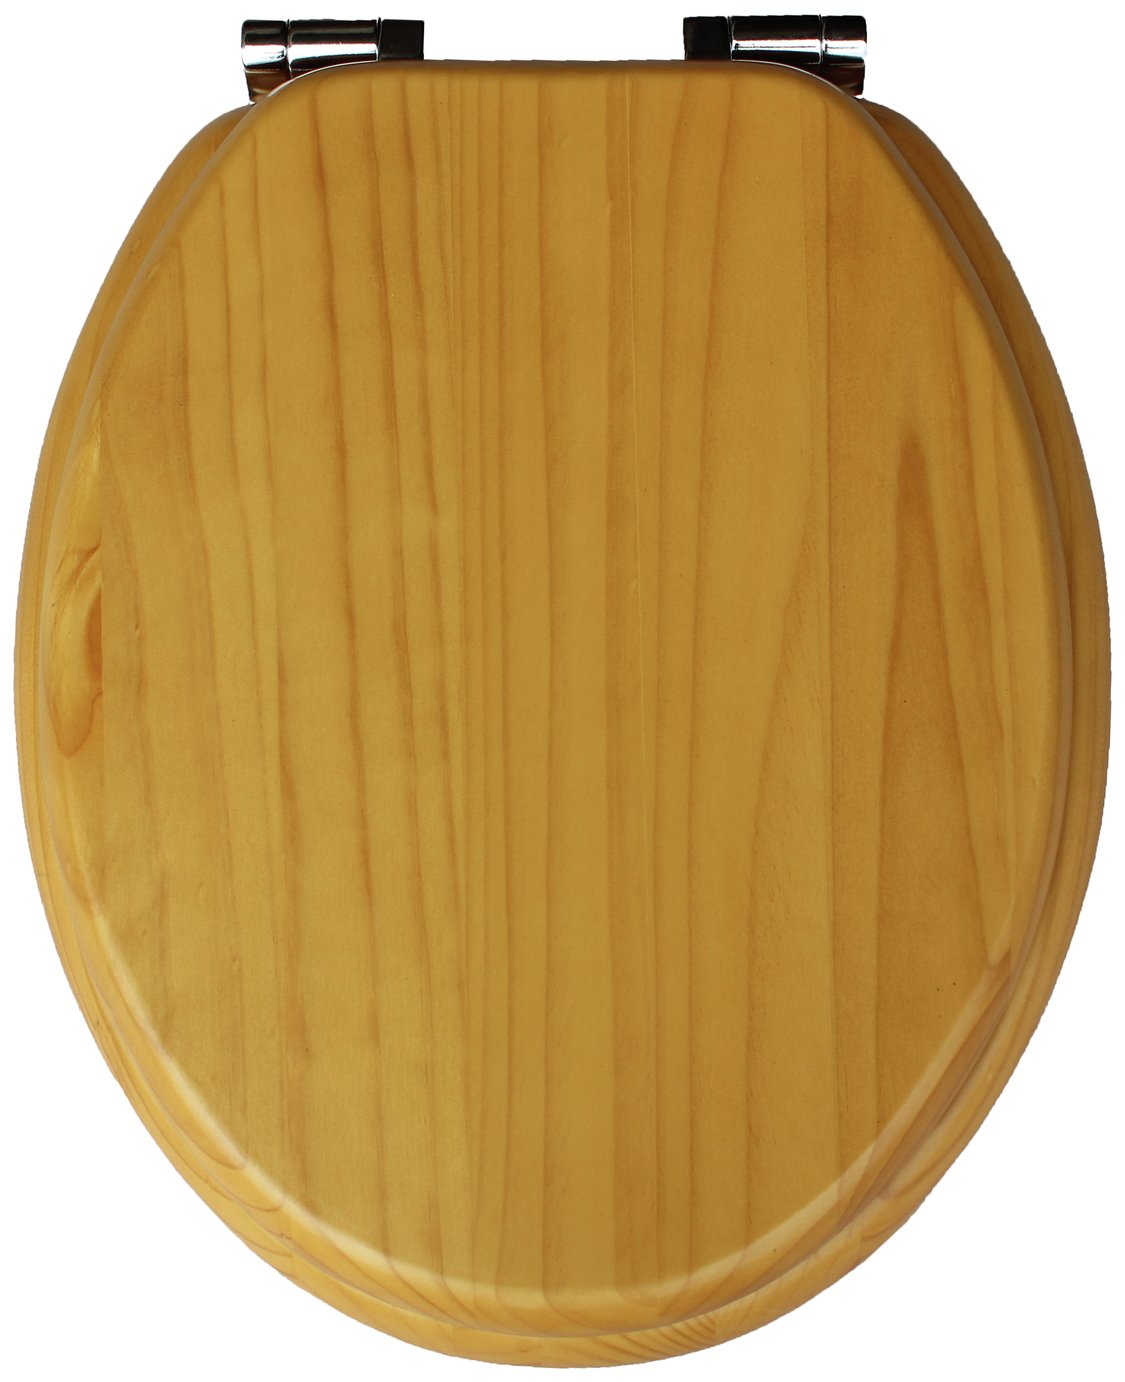 family toilet seat wood. family toilet seat wood  collection solid slow close light oak Family Toilet Seat Wood Natural Reflections Round Veneer